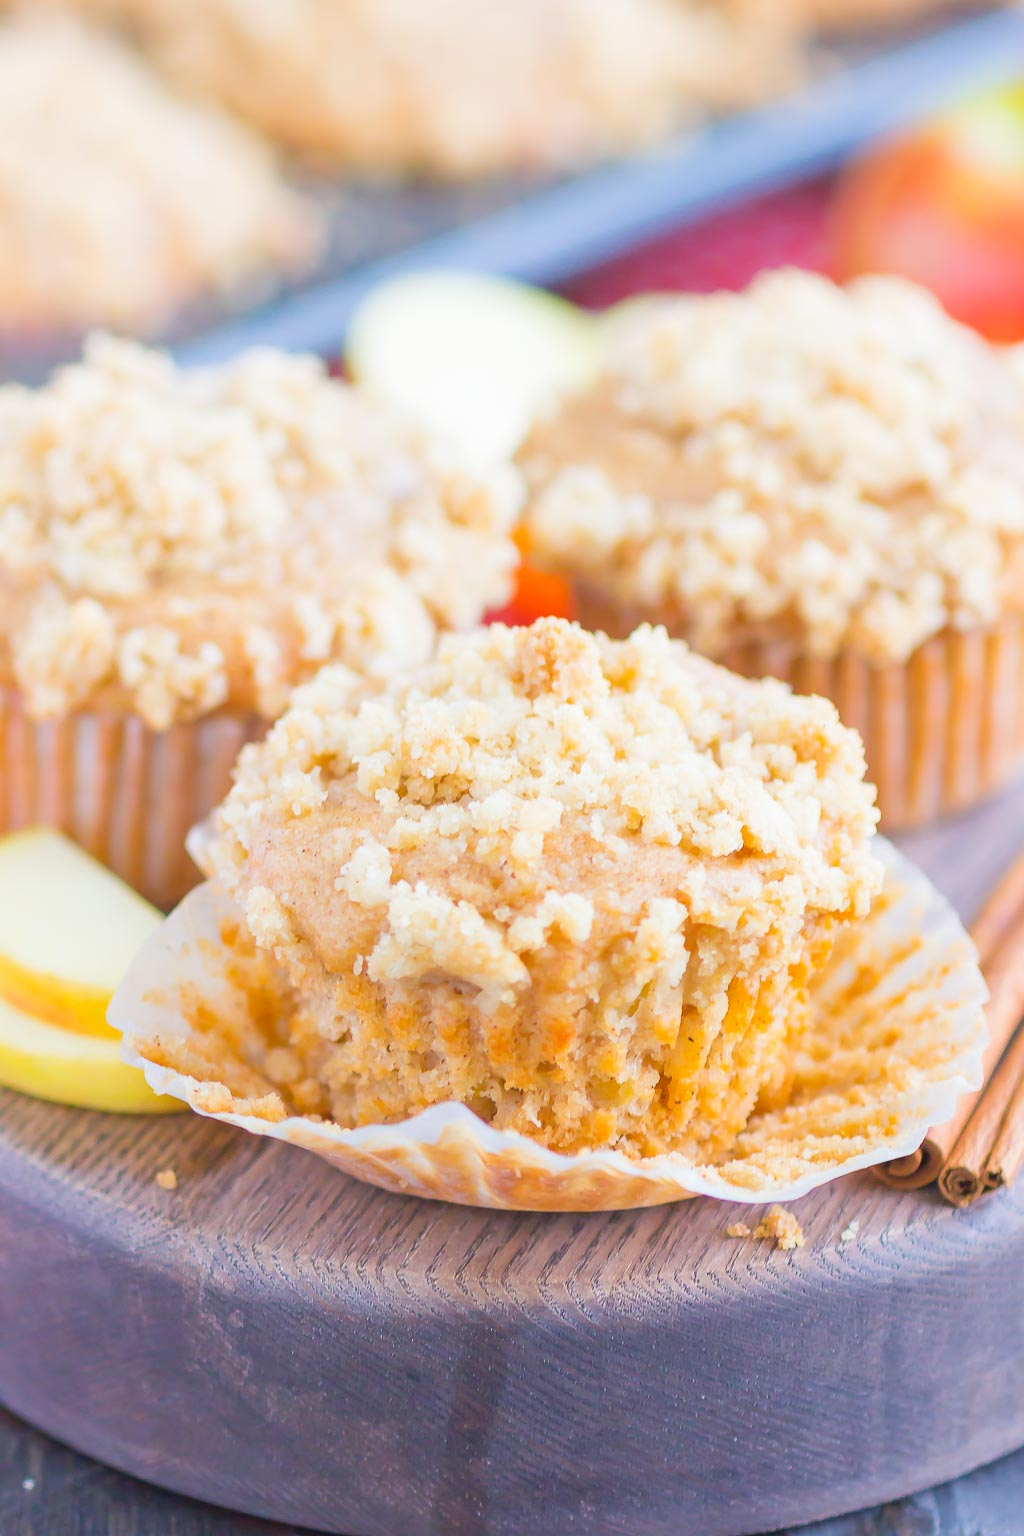 Apple Cinnamon Muffins are soft, moist, and bursting with cozy flavors. With tender chunks of fresh apples, a swirl of sweet cinnamon and a buttery, crunchy, streusel topping, these muffins make the best breakfast or dessert!